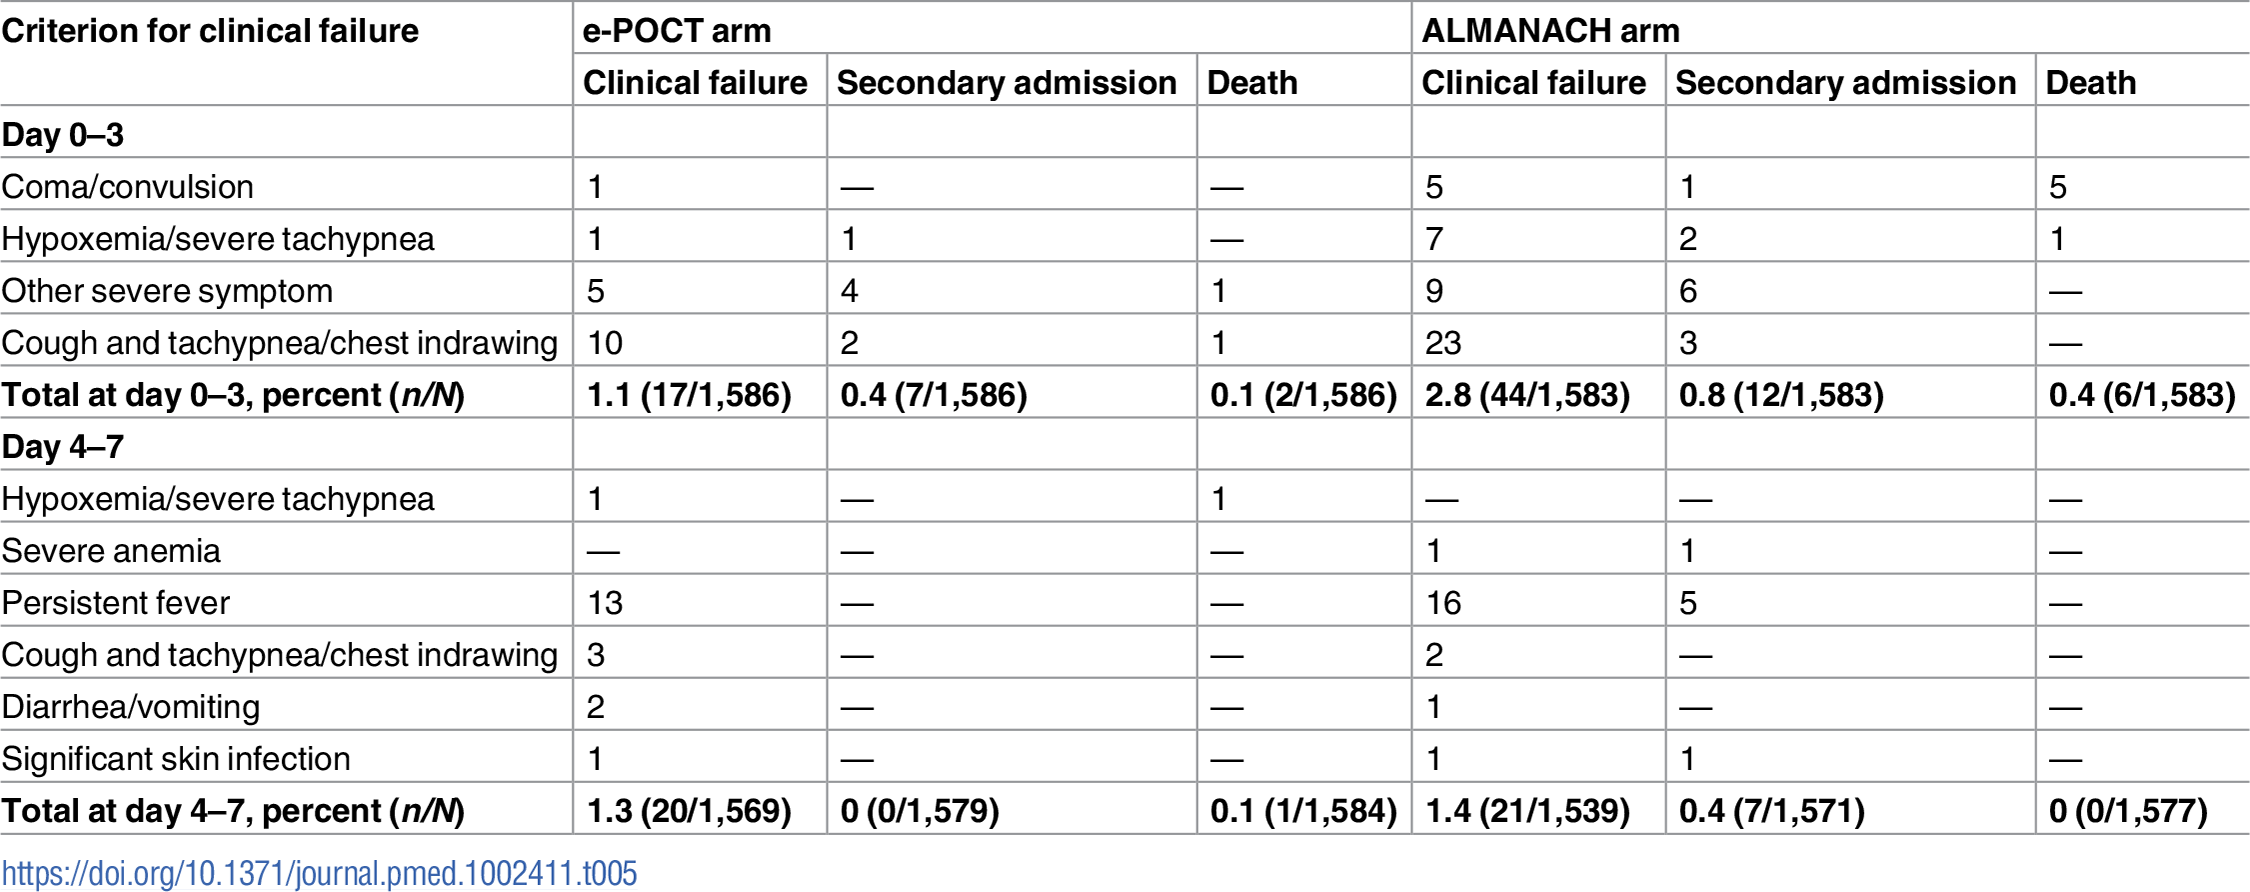 Details of clinical failure by day 7 in the randomized study.